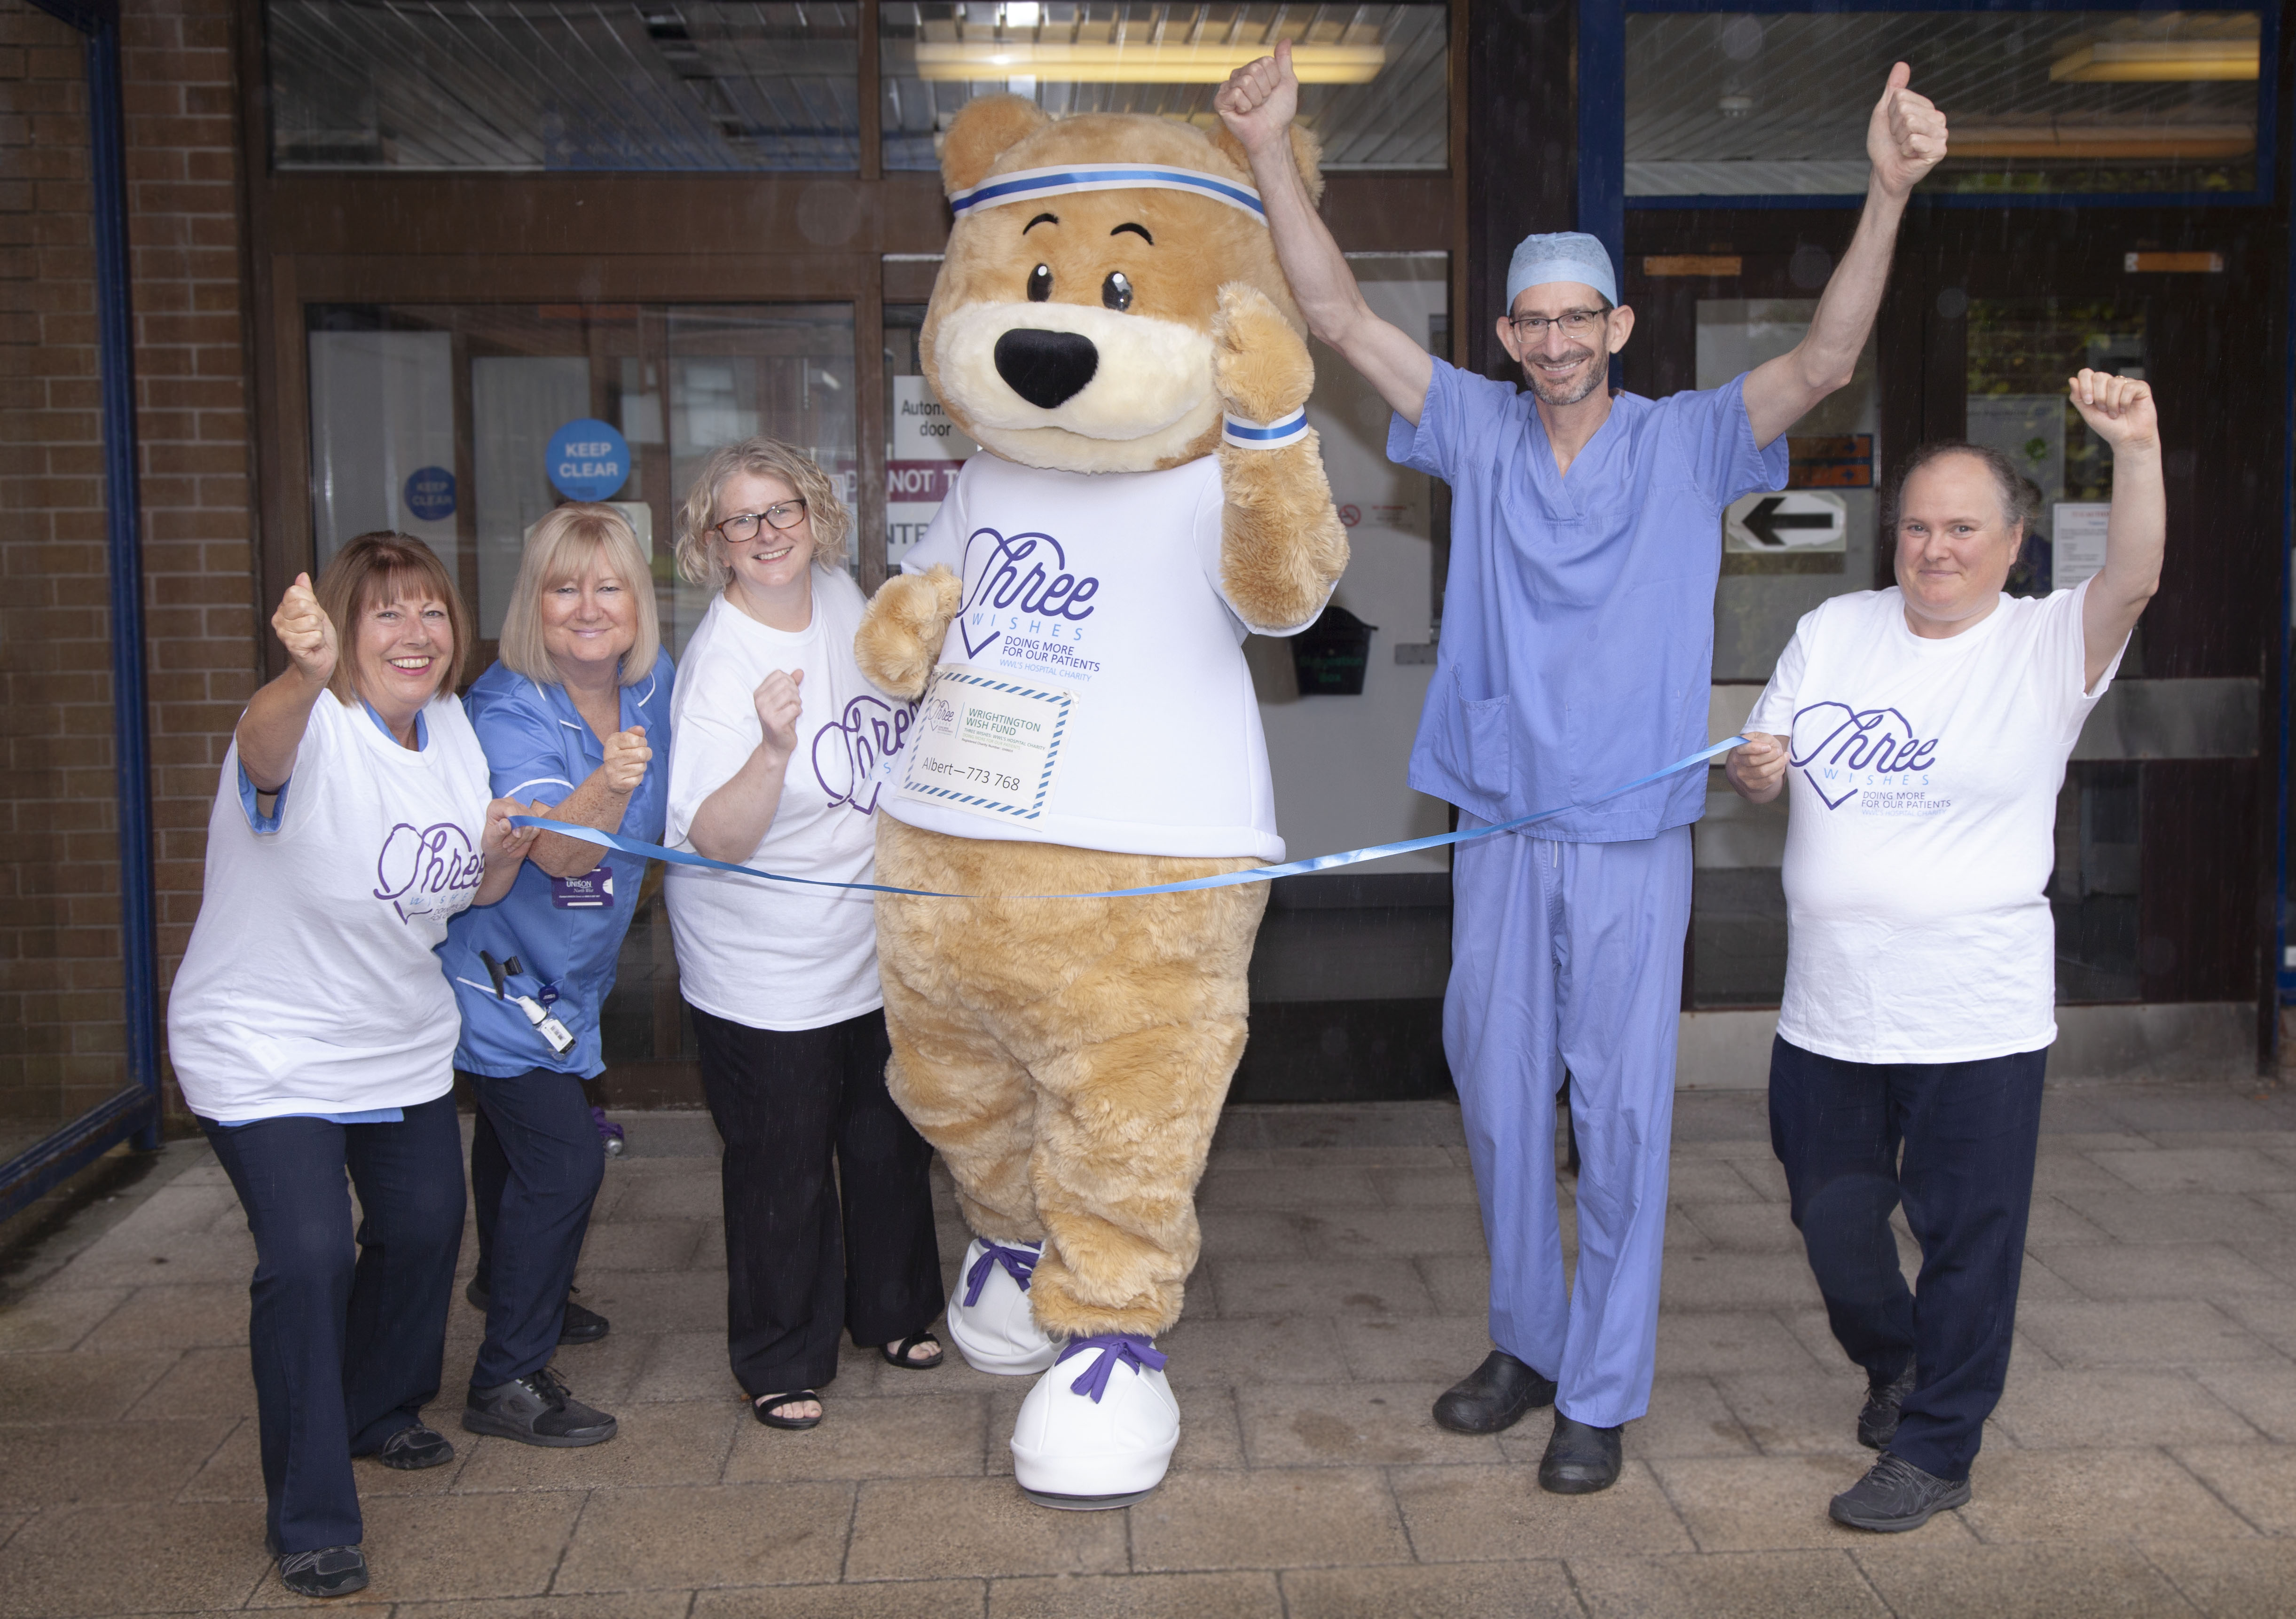 , Wrightington Wish Walk 2019, Skem News - The Top Source for Skelmersdale News, Skem News - The Top Source for Skelmersdale News